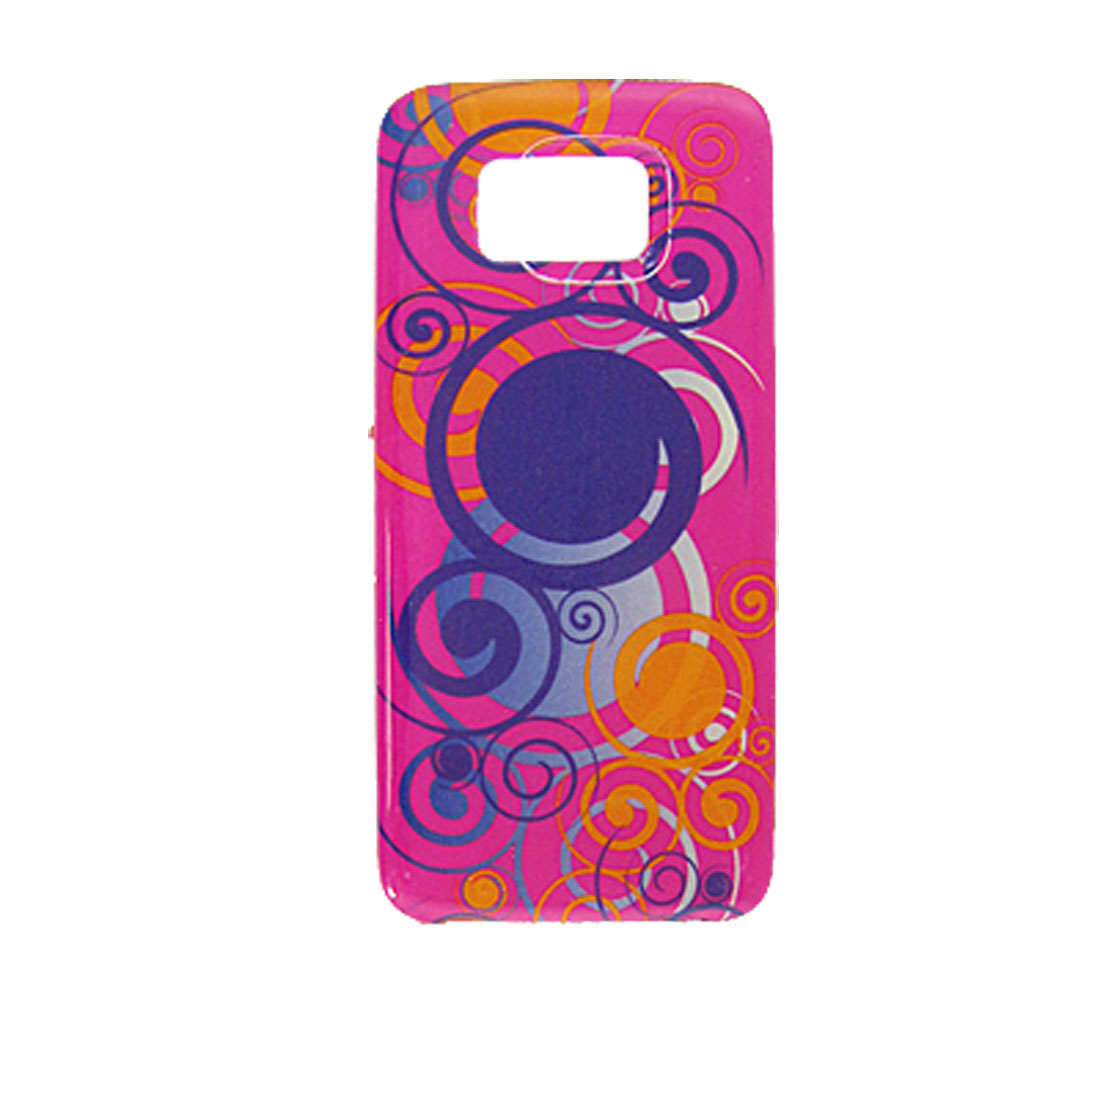 Retro Circle Print Hard Plastic Battery Door Cover for Nokia 5530